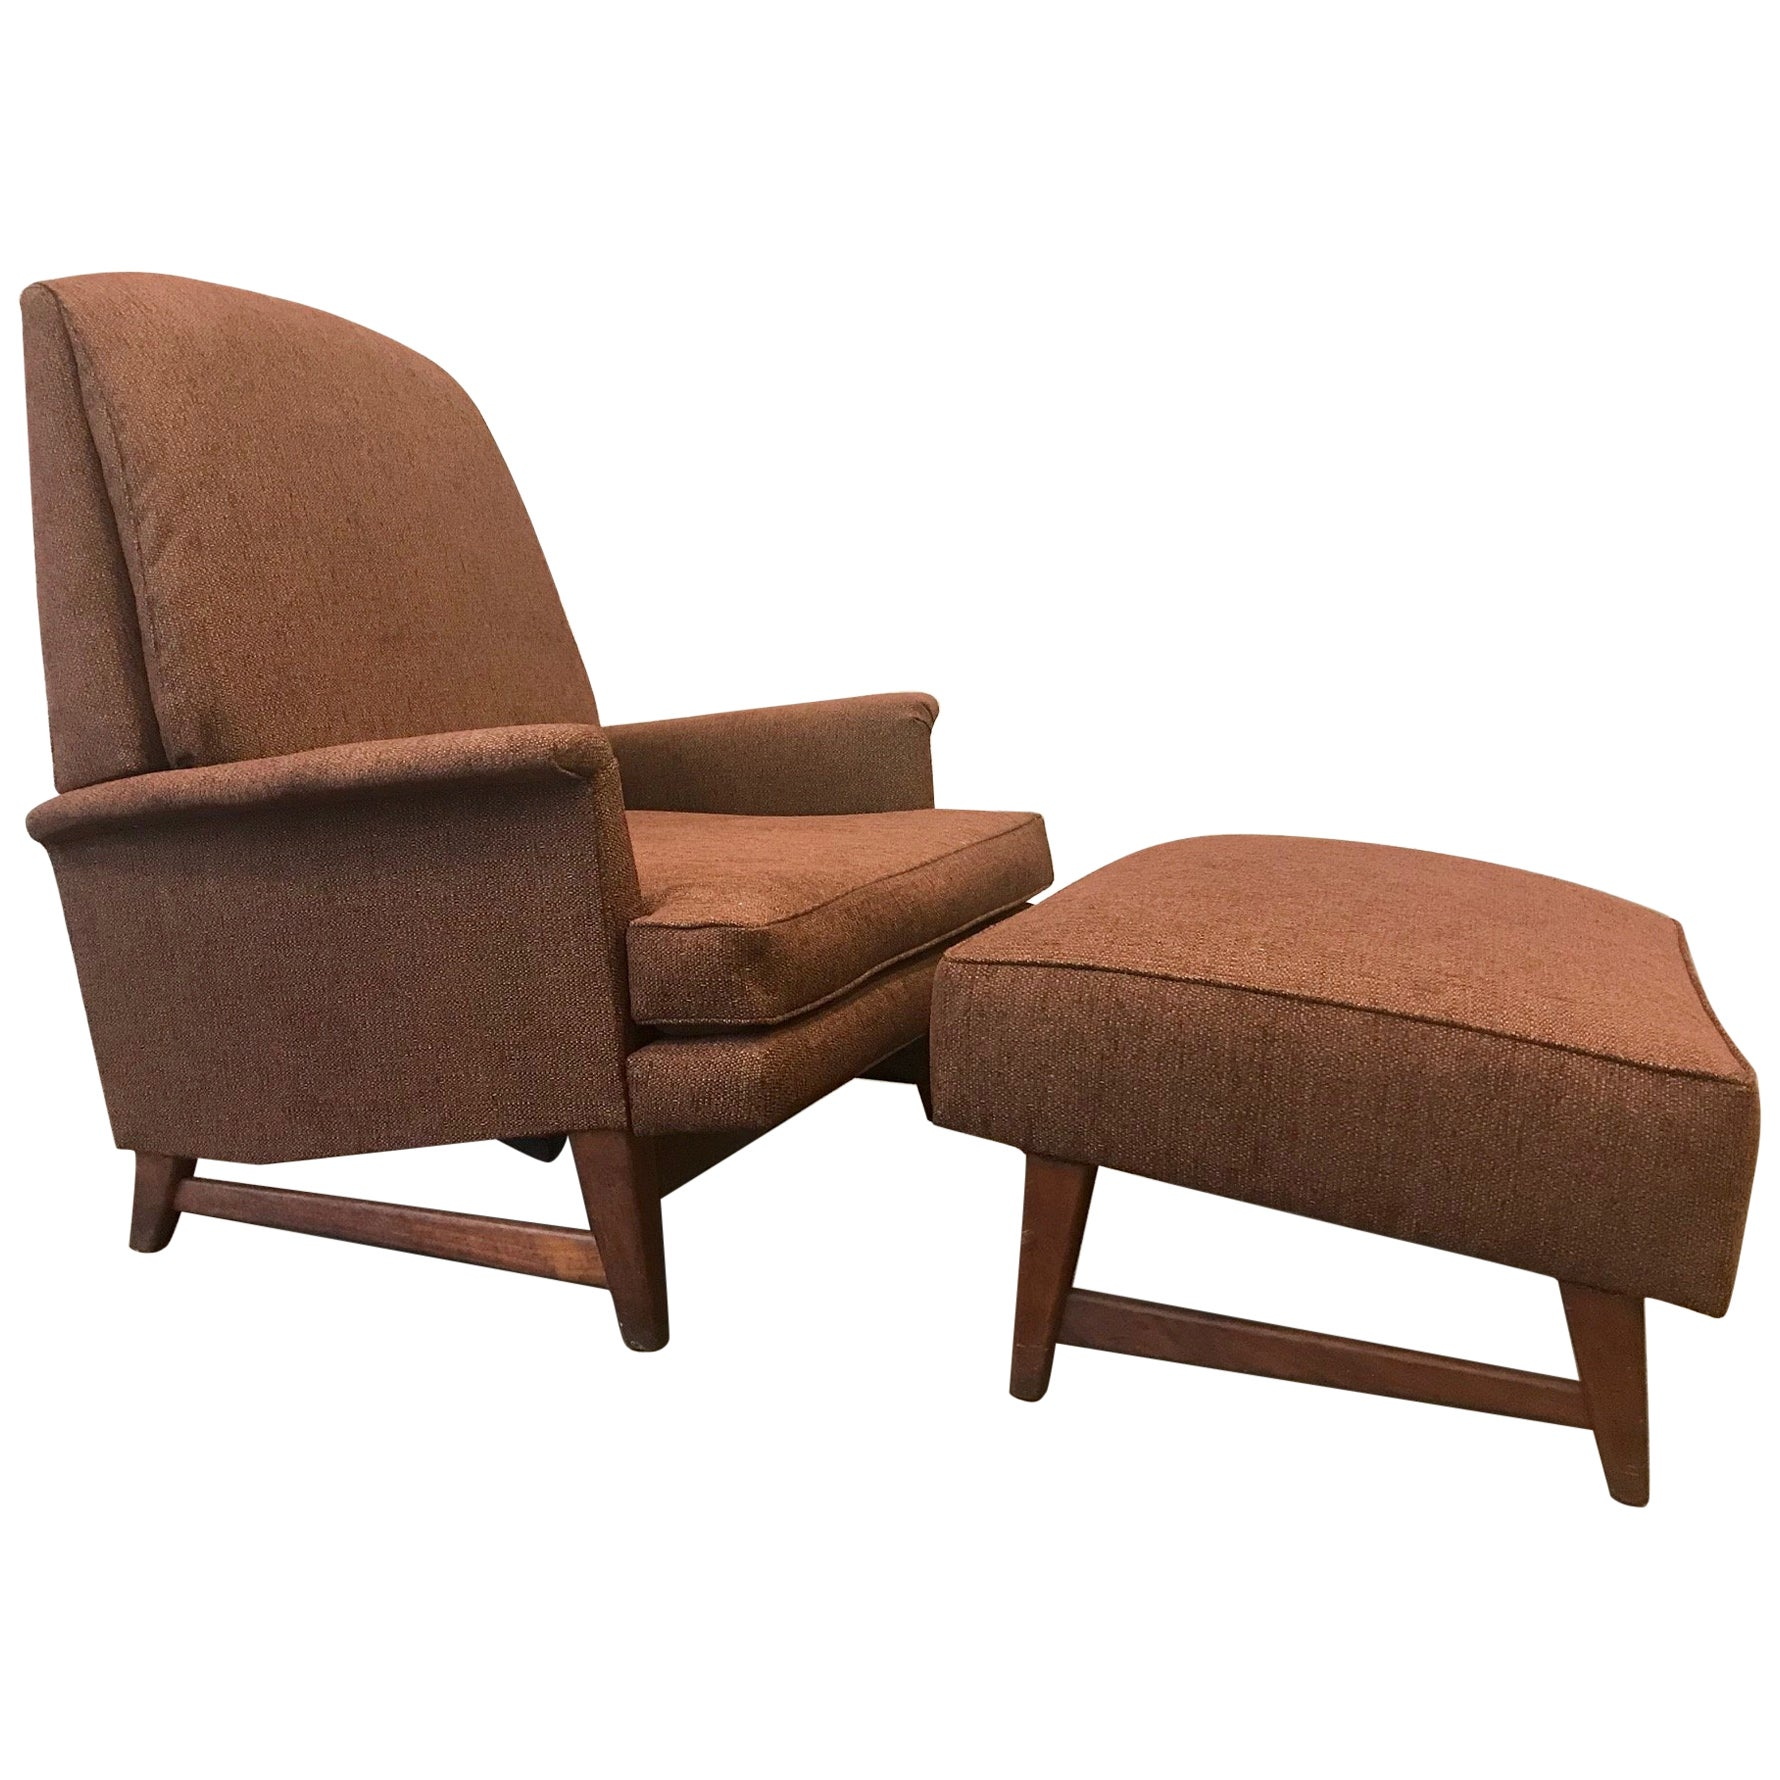 Selig Chair Reclining Lounge Chair And Ottoman By Selig